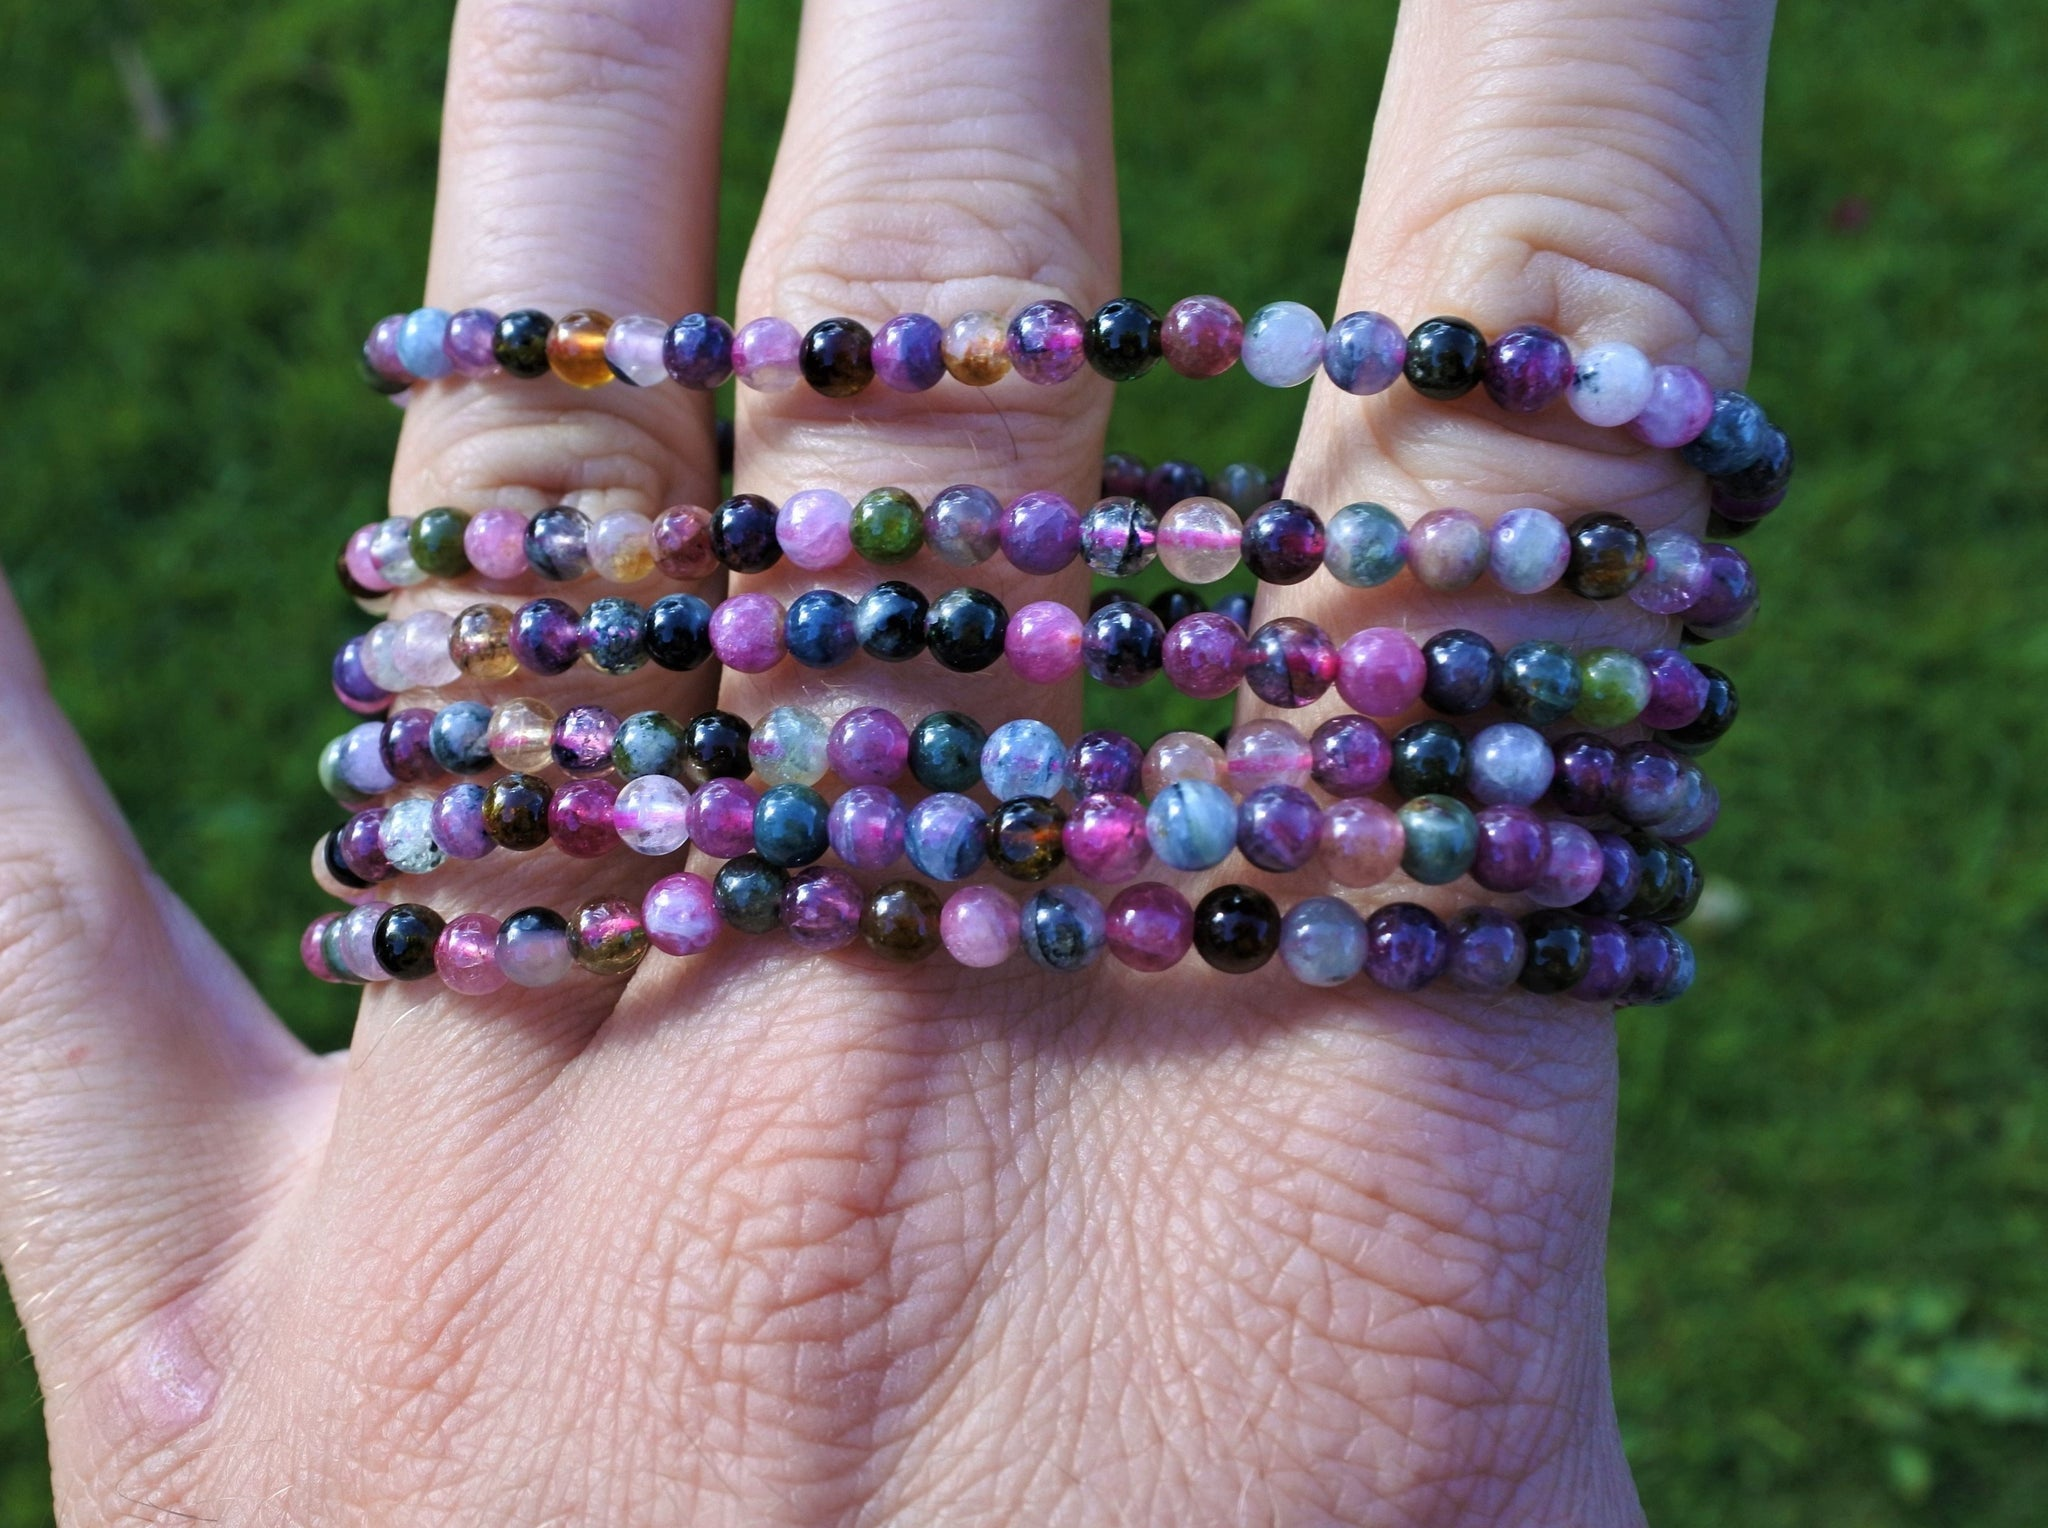 Mixed Tourmaline Bracelet 4mm - Earth's Treasures